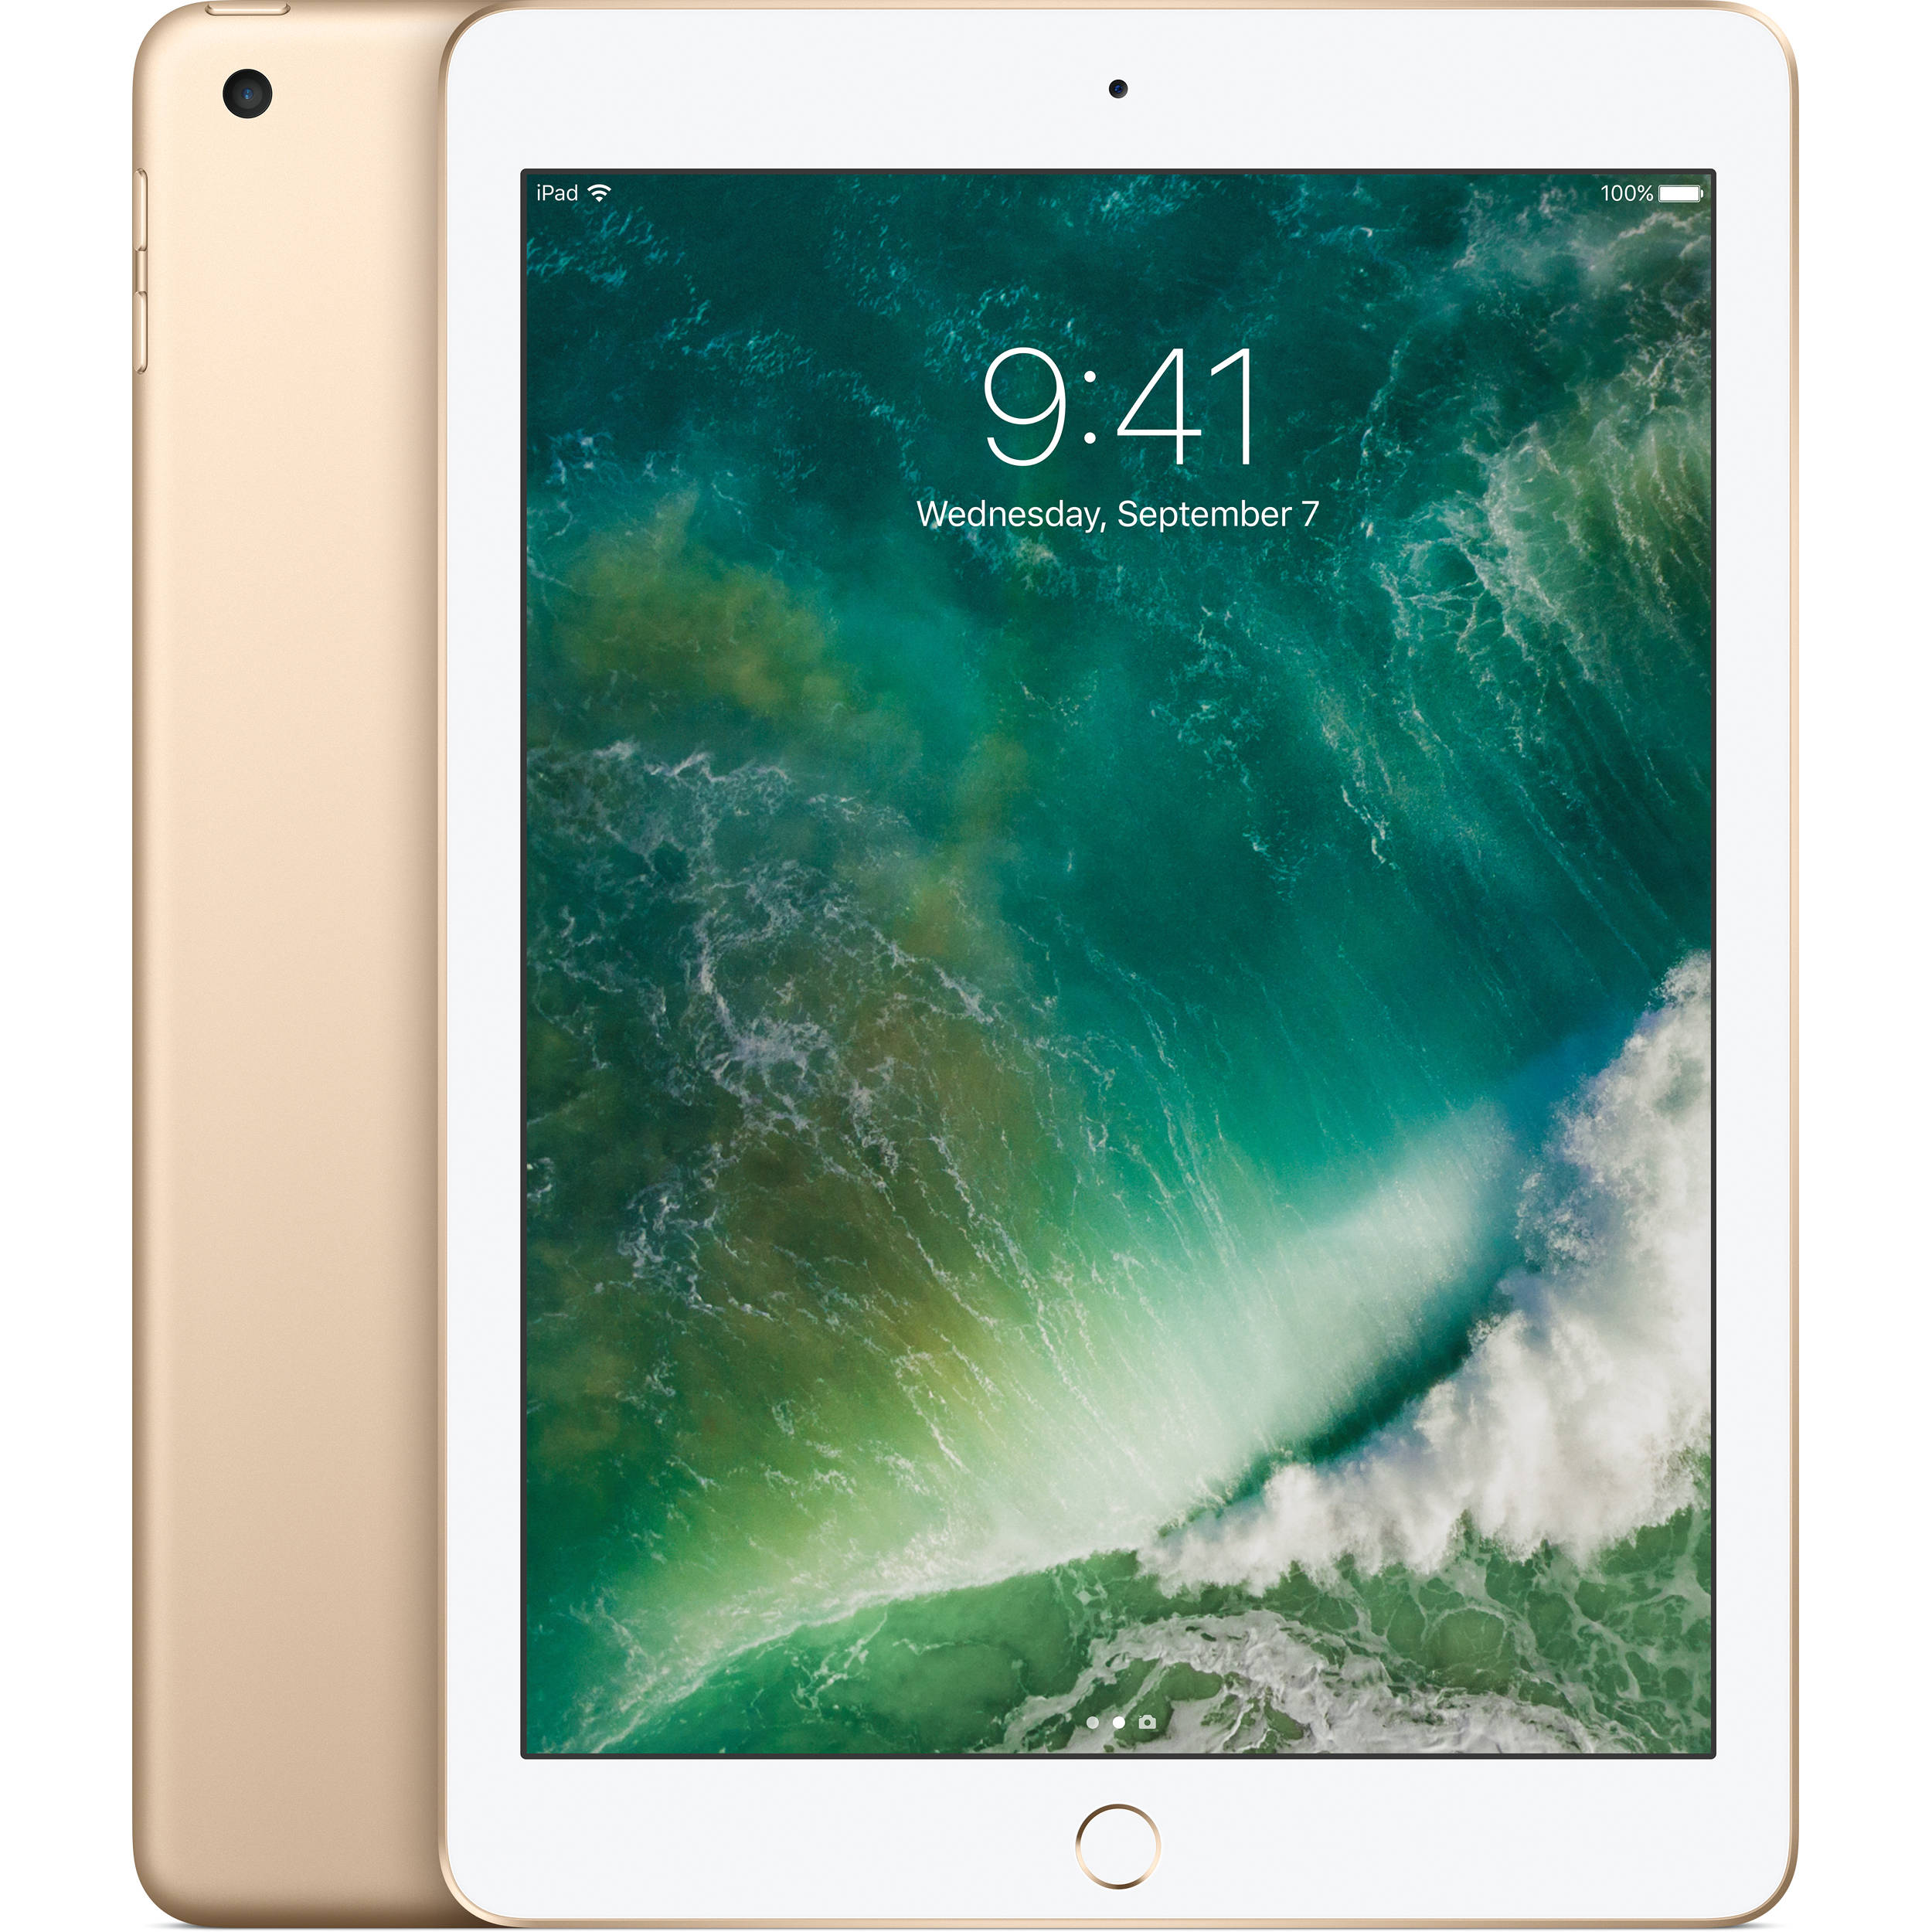 "Refurbished Apple iPad 2017 MPGW2LL/A with WiFI 9.7"" Touchscreen Tablet Featuring iOS 10, Gold"